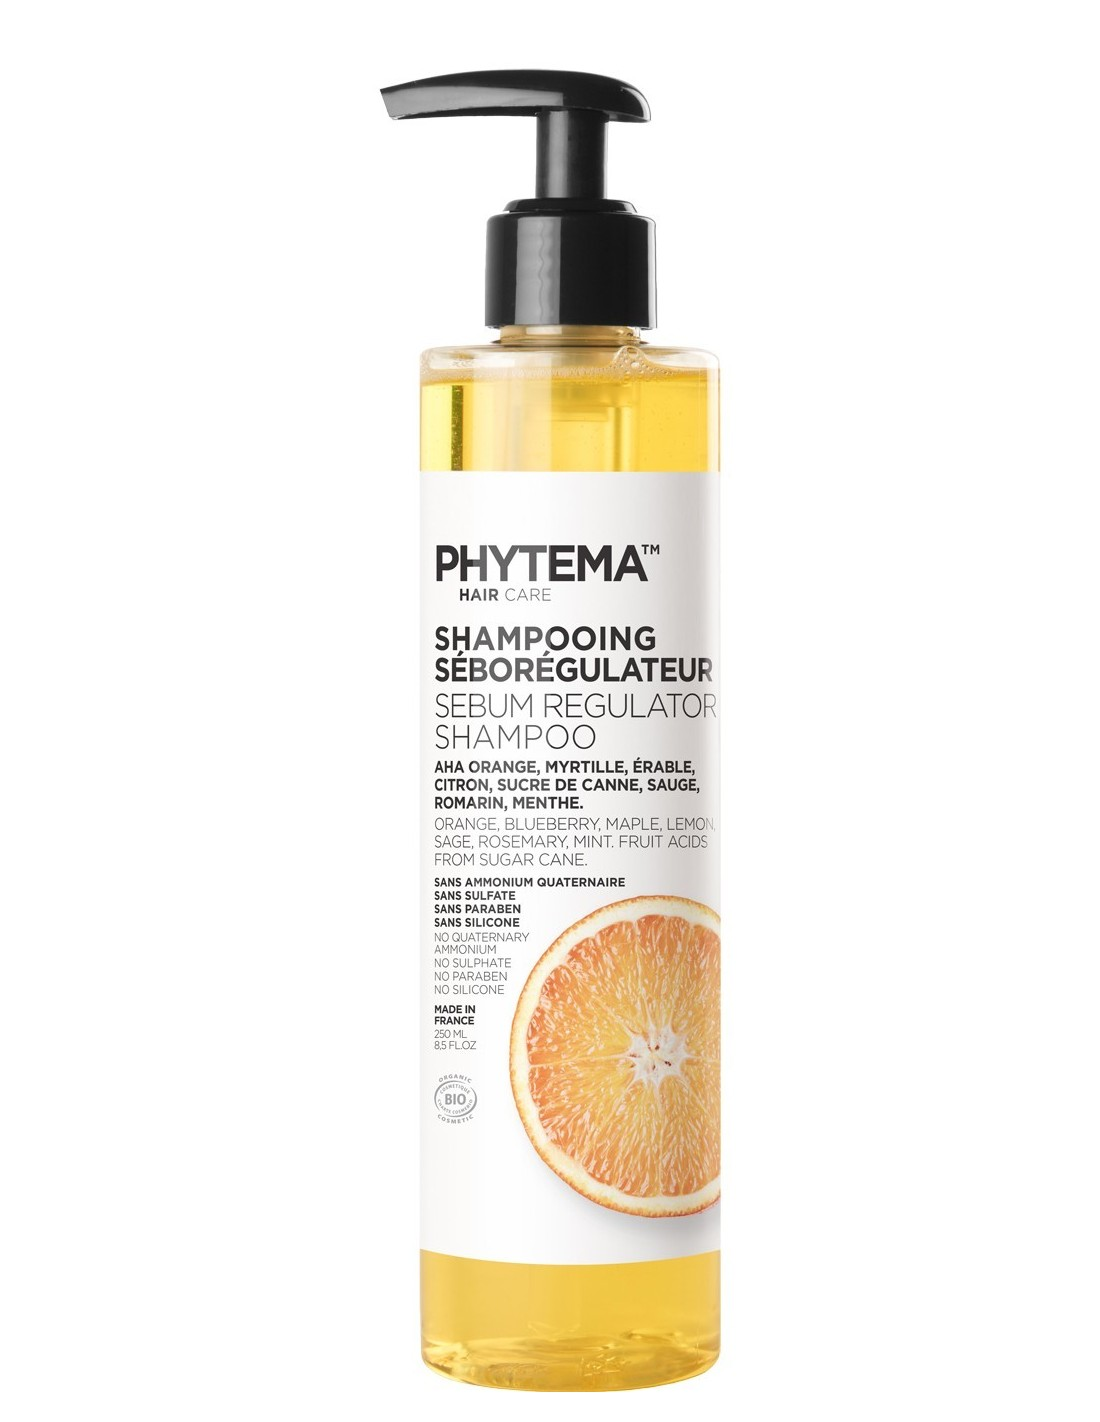 Phytema-shampoing-sebo-regulateur-bio-acides-de-fruits-sucre-de-canne